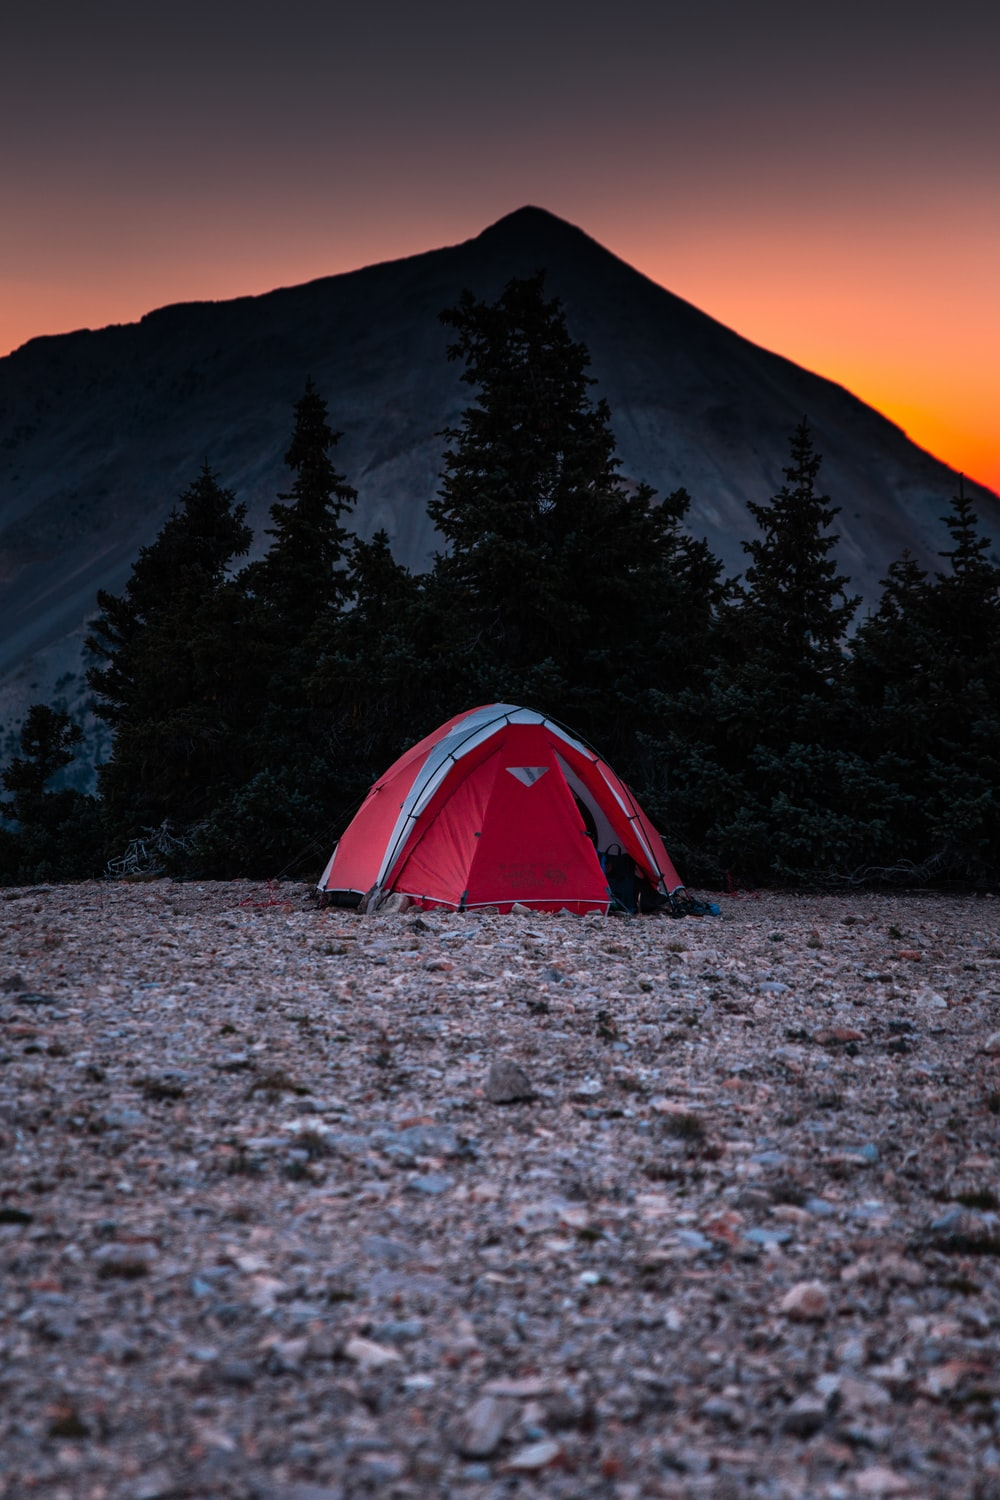 red and gray done tent near tree